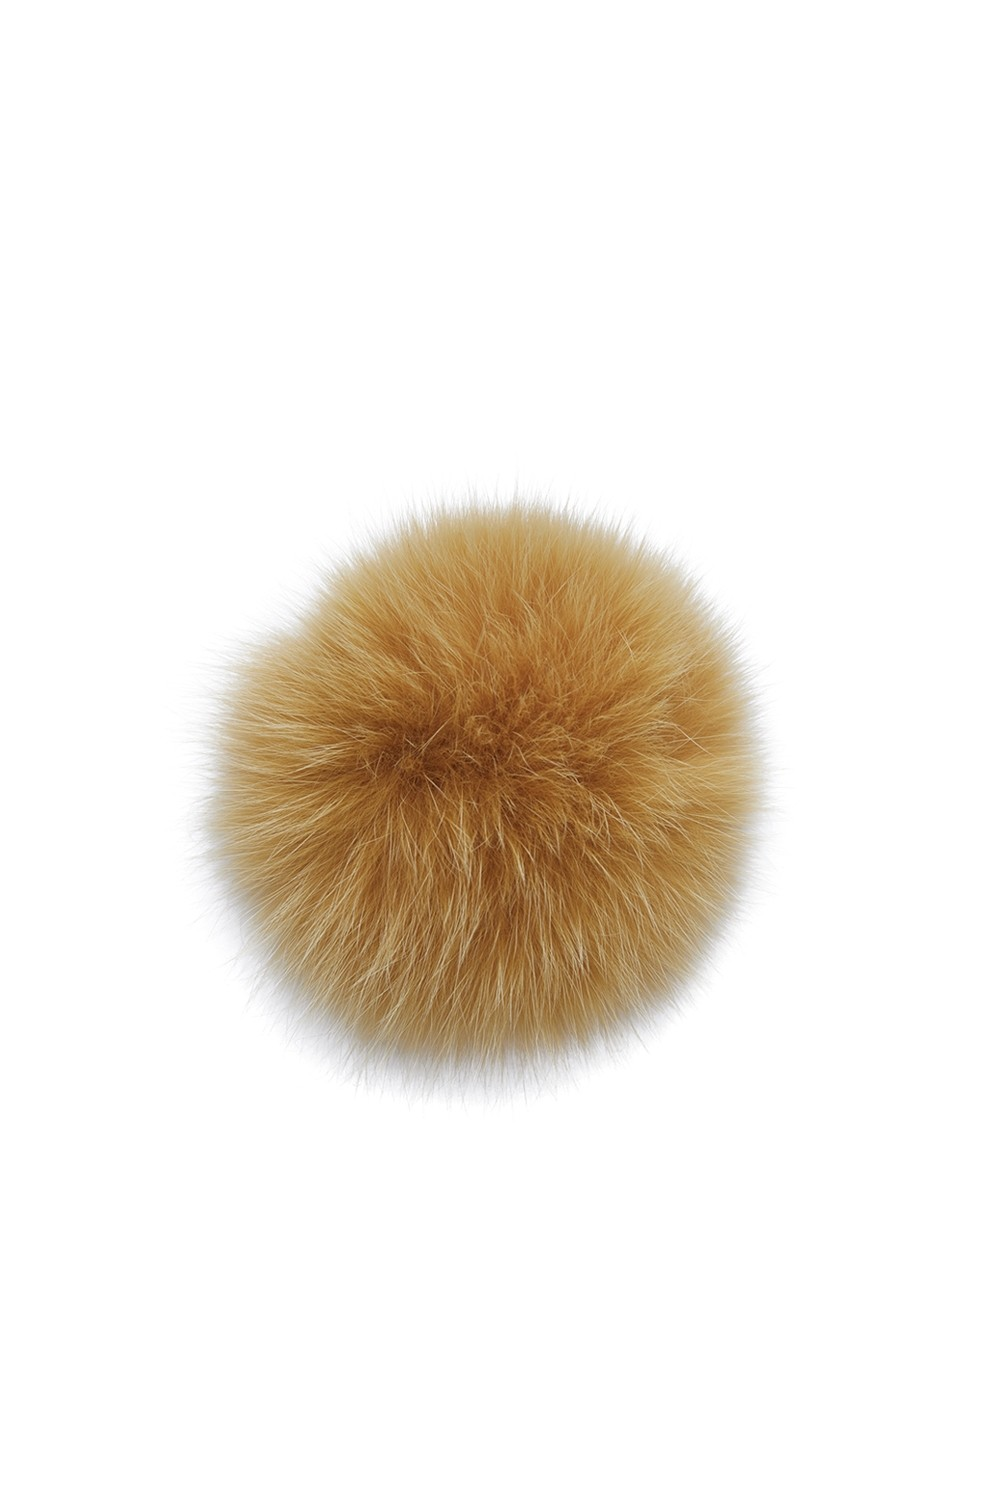 MP 96207 1422 Pom Pom Dark Honey